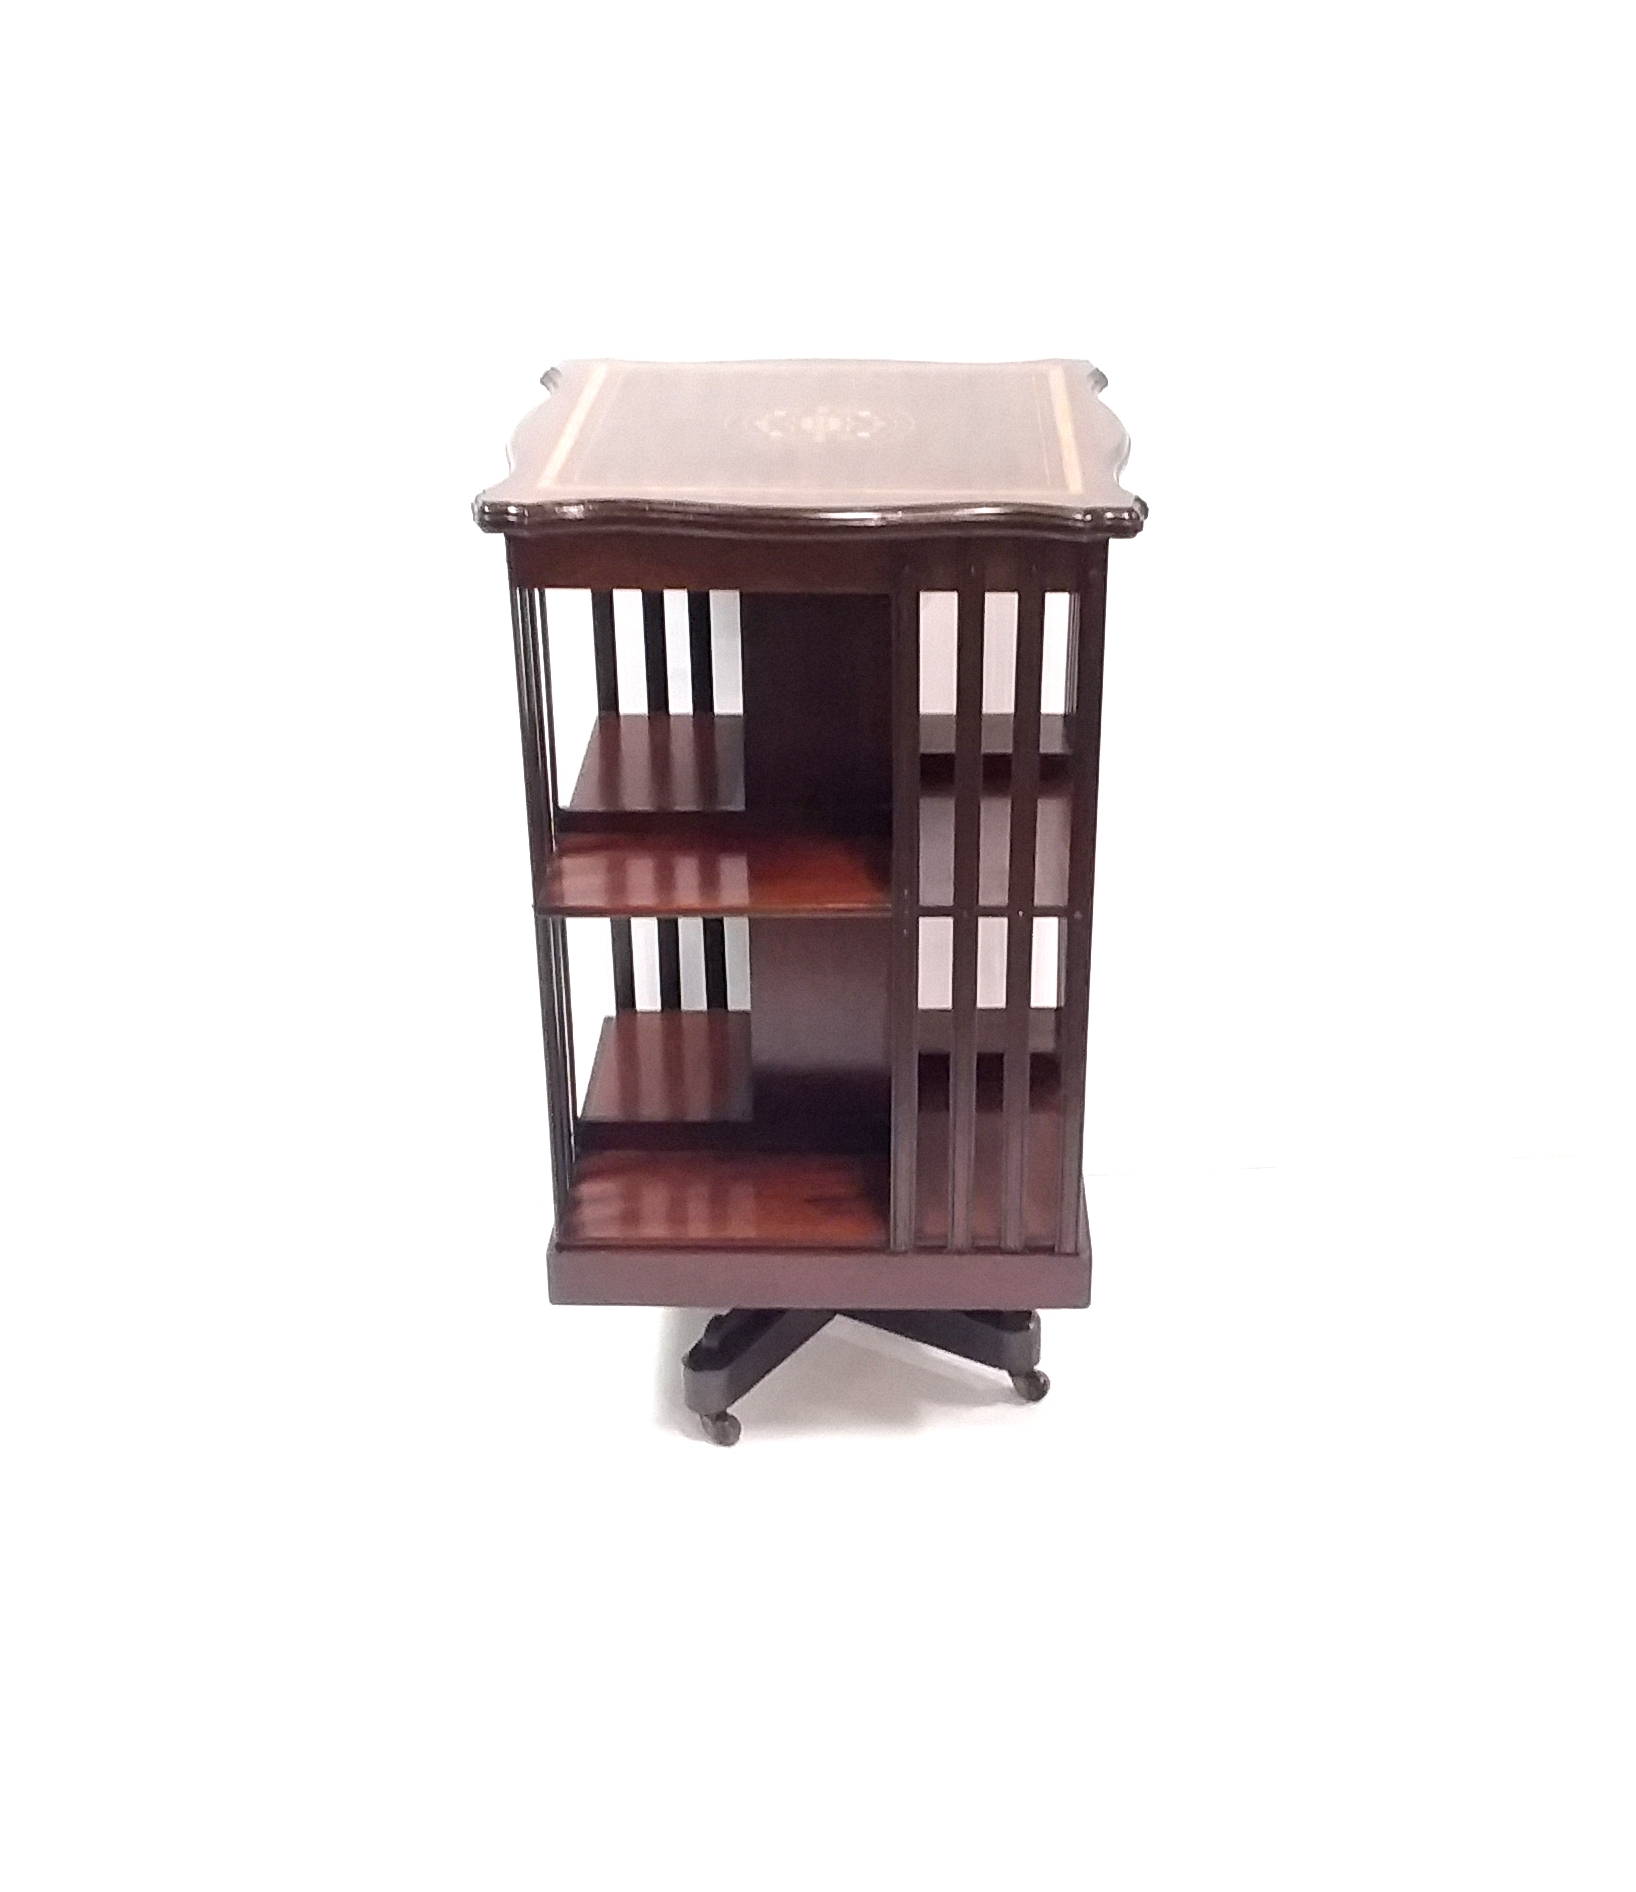 Antique_Edwardian_Revolving_Bookcase